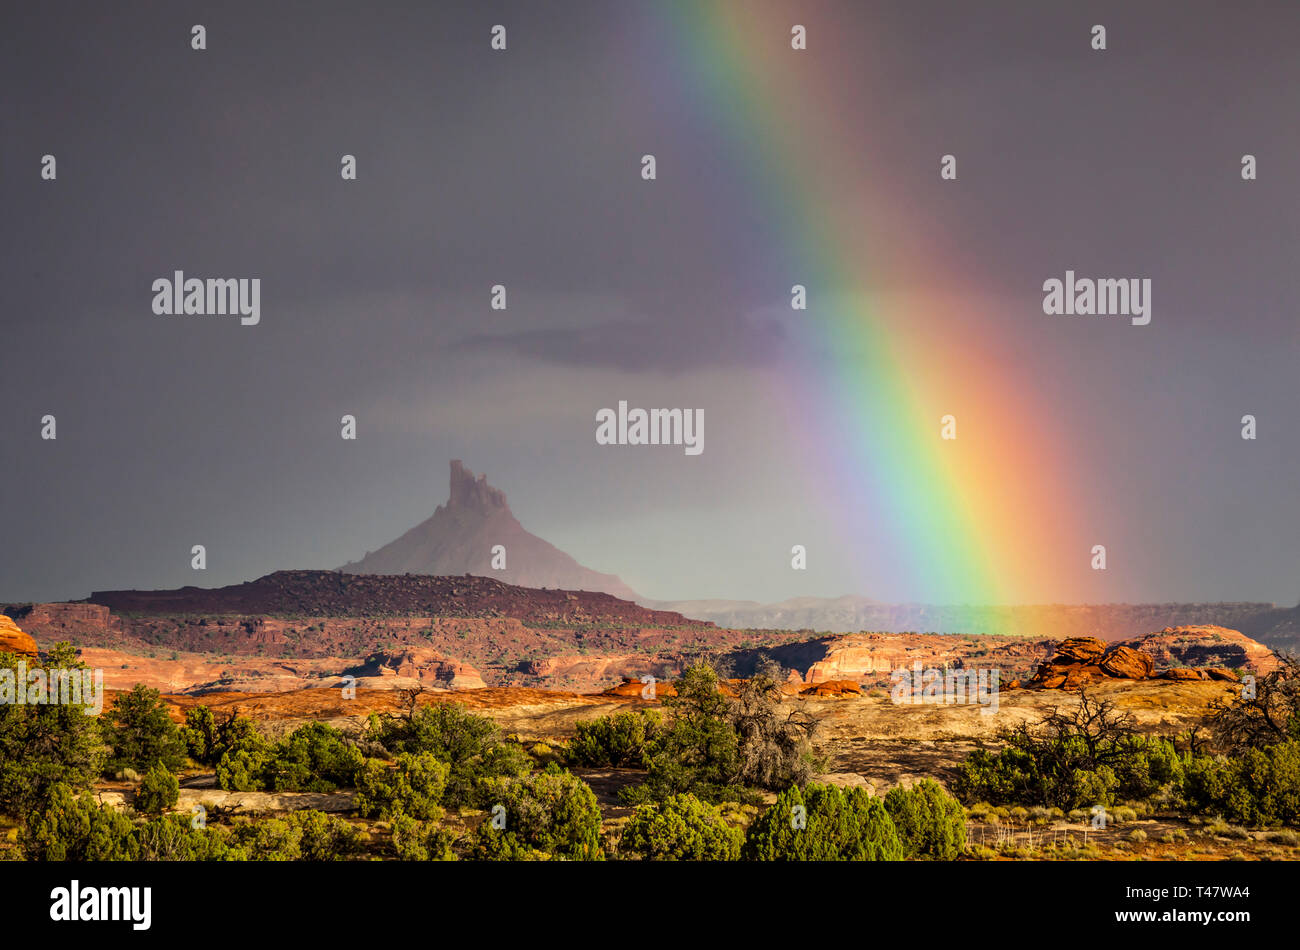 A rainbow over South Six-Shooter Peak in South Eastern Utah as seen from Canyonland National Park during a rain storm, USA. Stock Photo